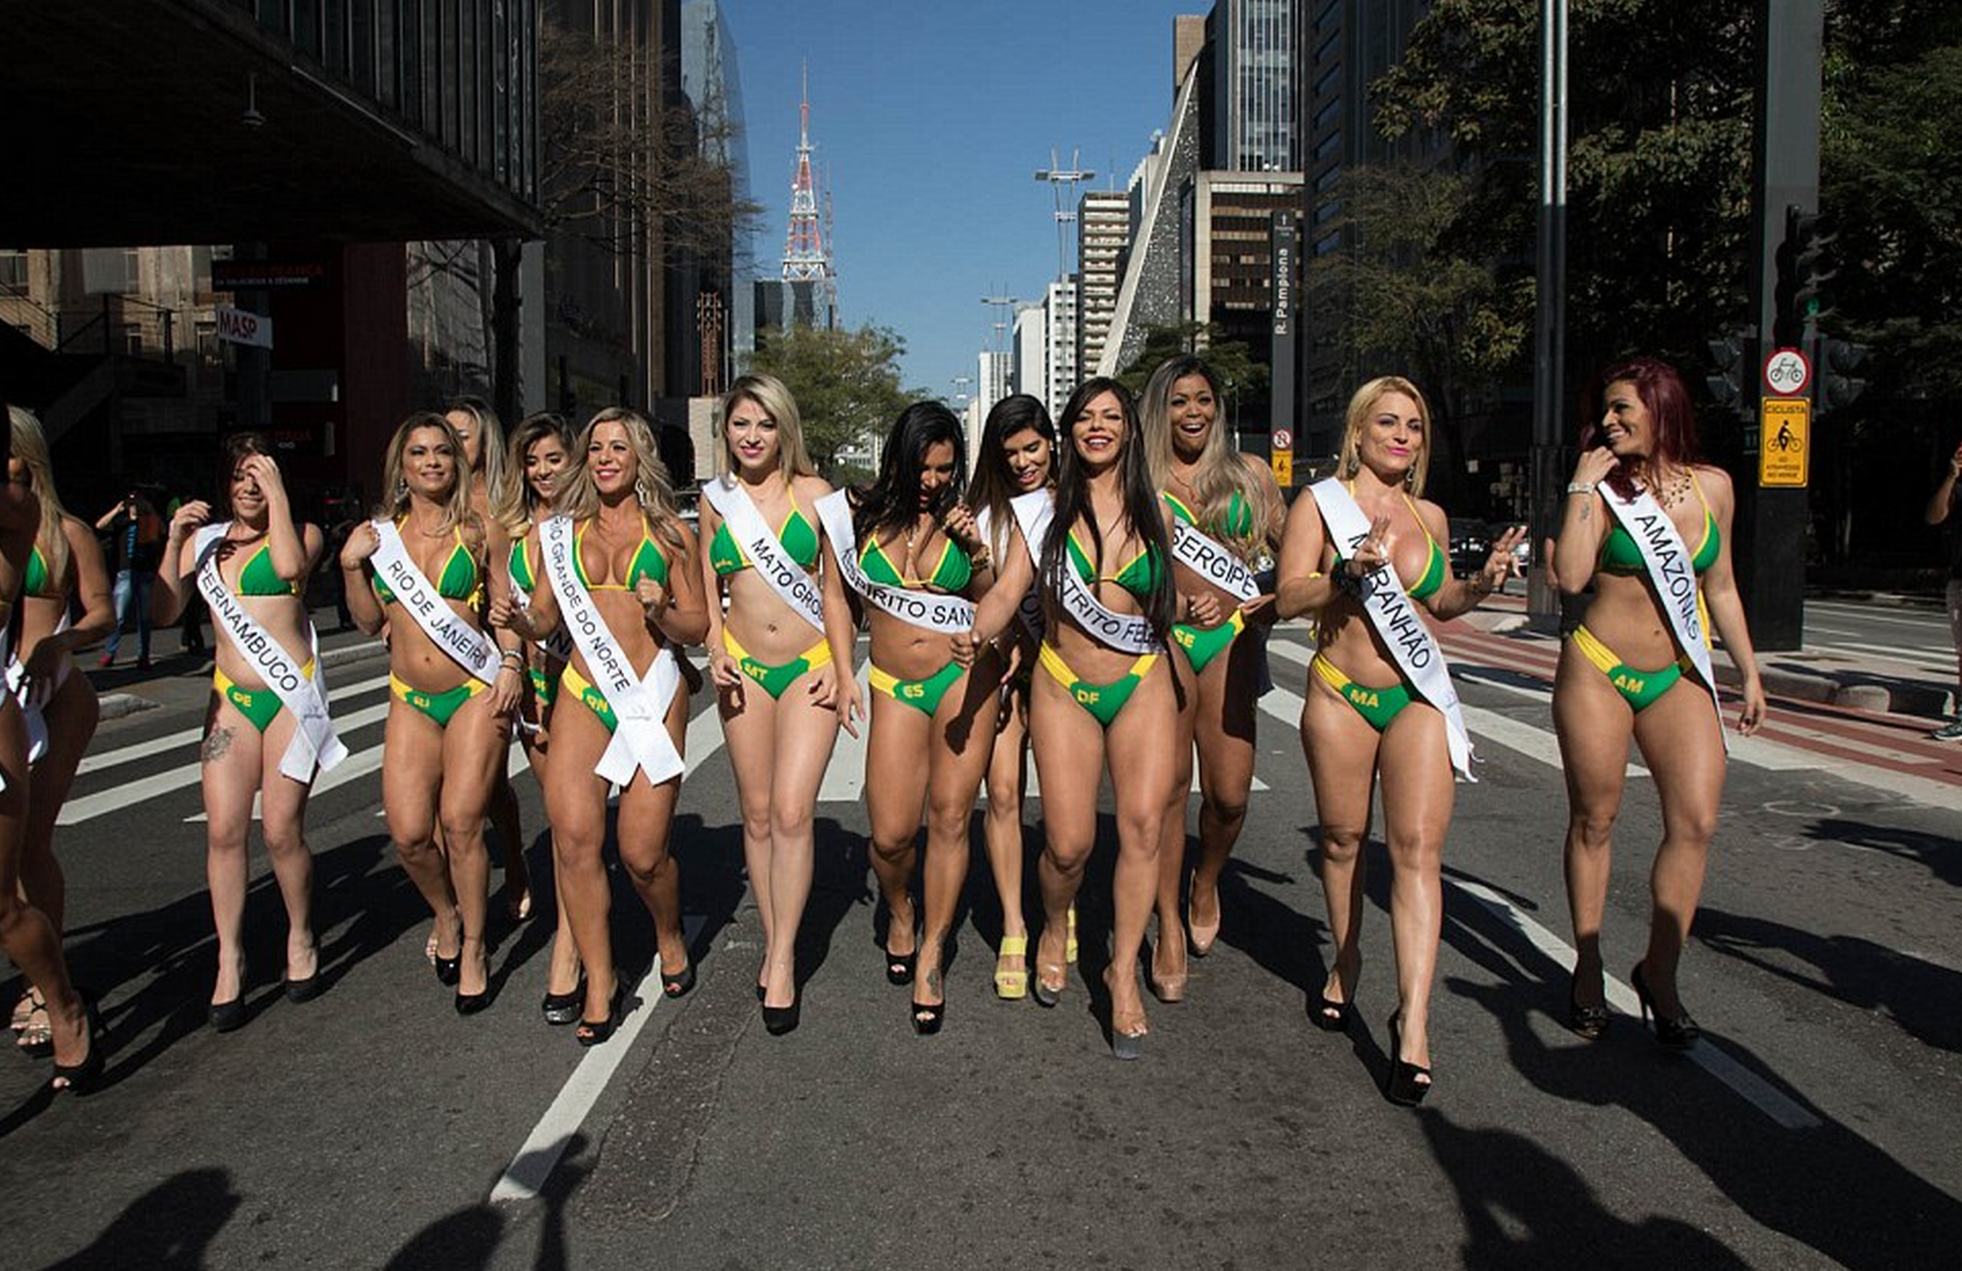 Brazilian Miss Bum Bum Contestants Cause Chaos On Streets Of Sao Paulo IRqJVgLcy